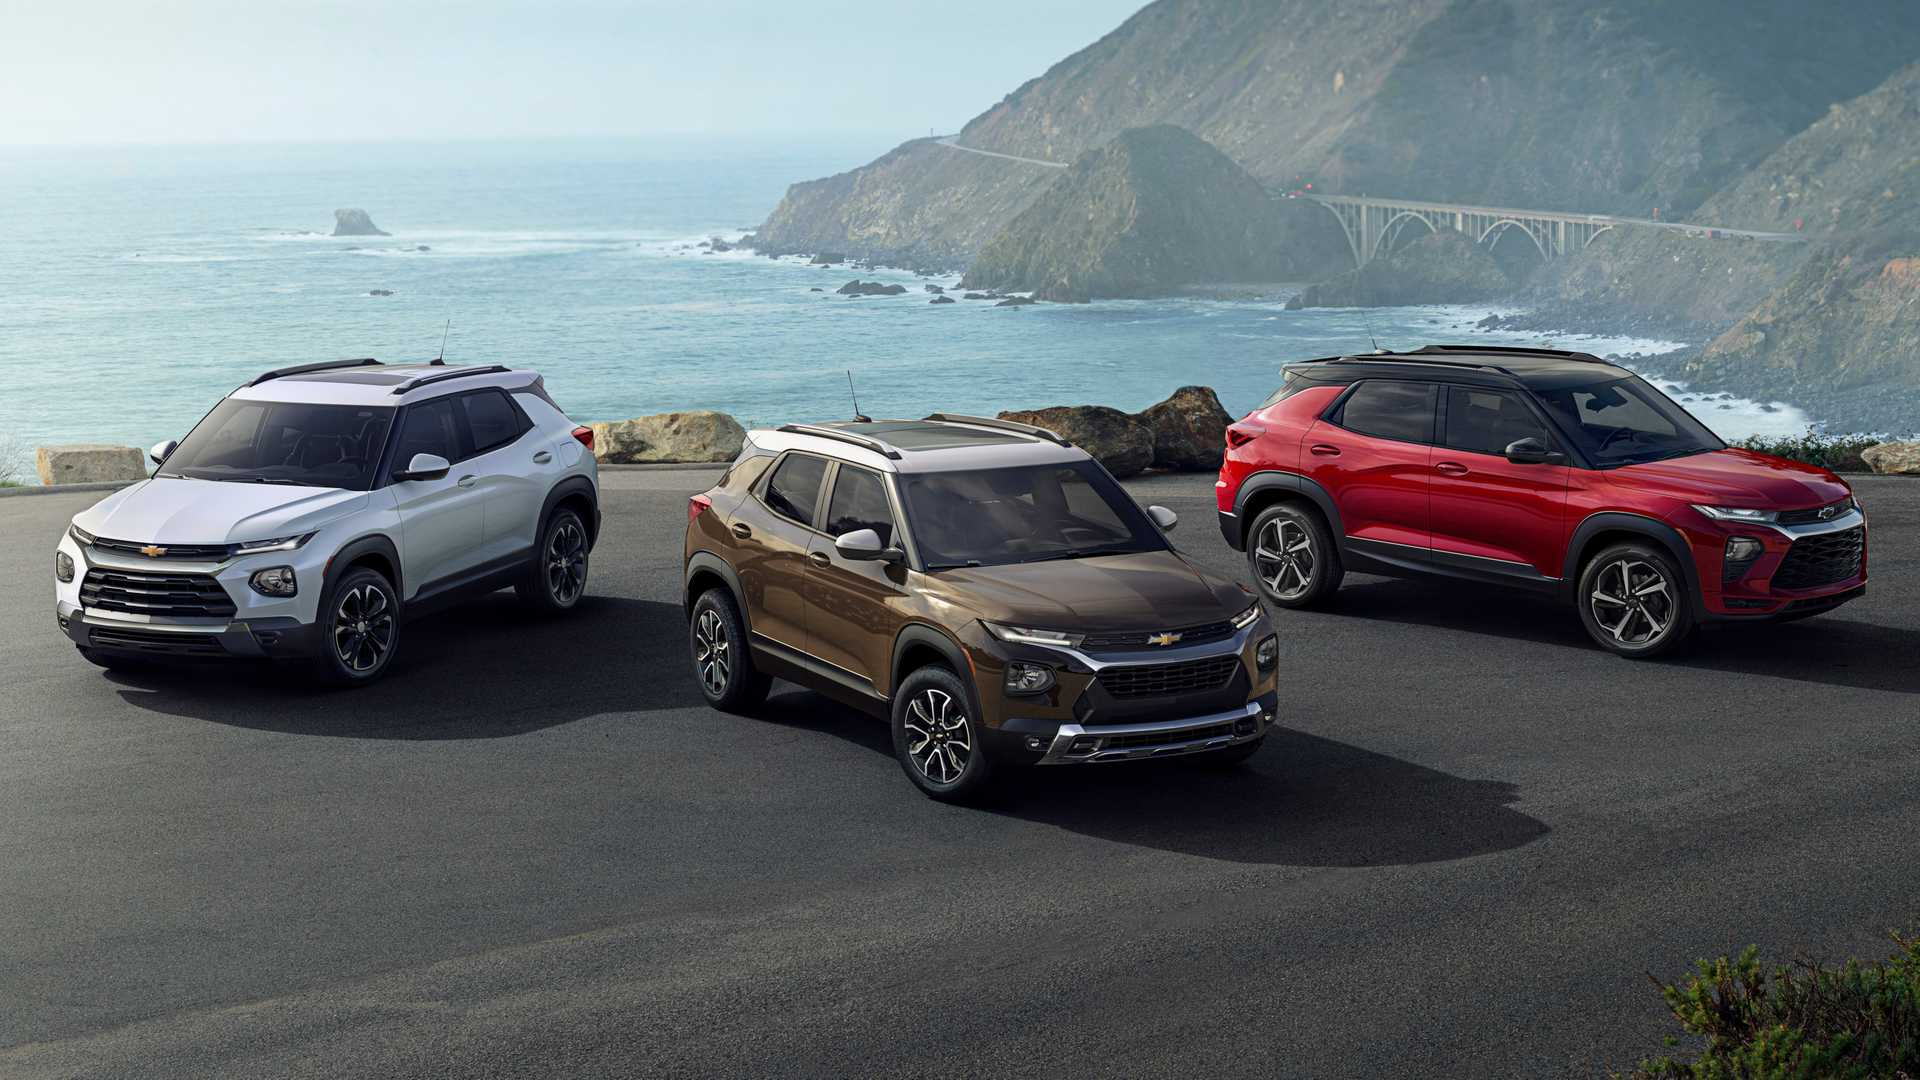 2021 Trailblazer Ss Us Price and Review